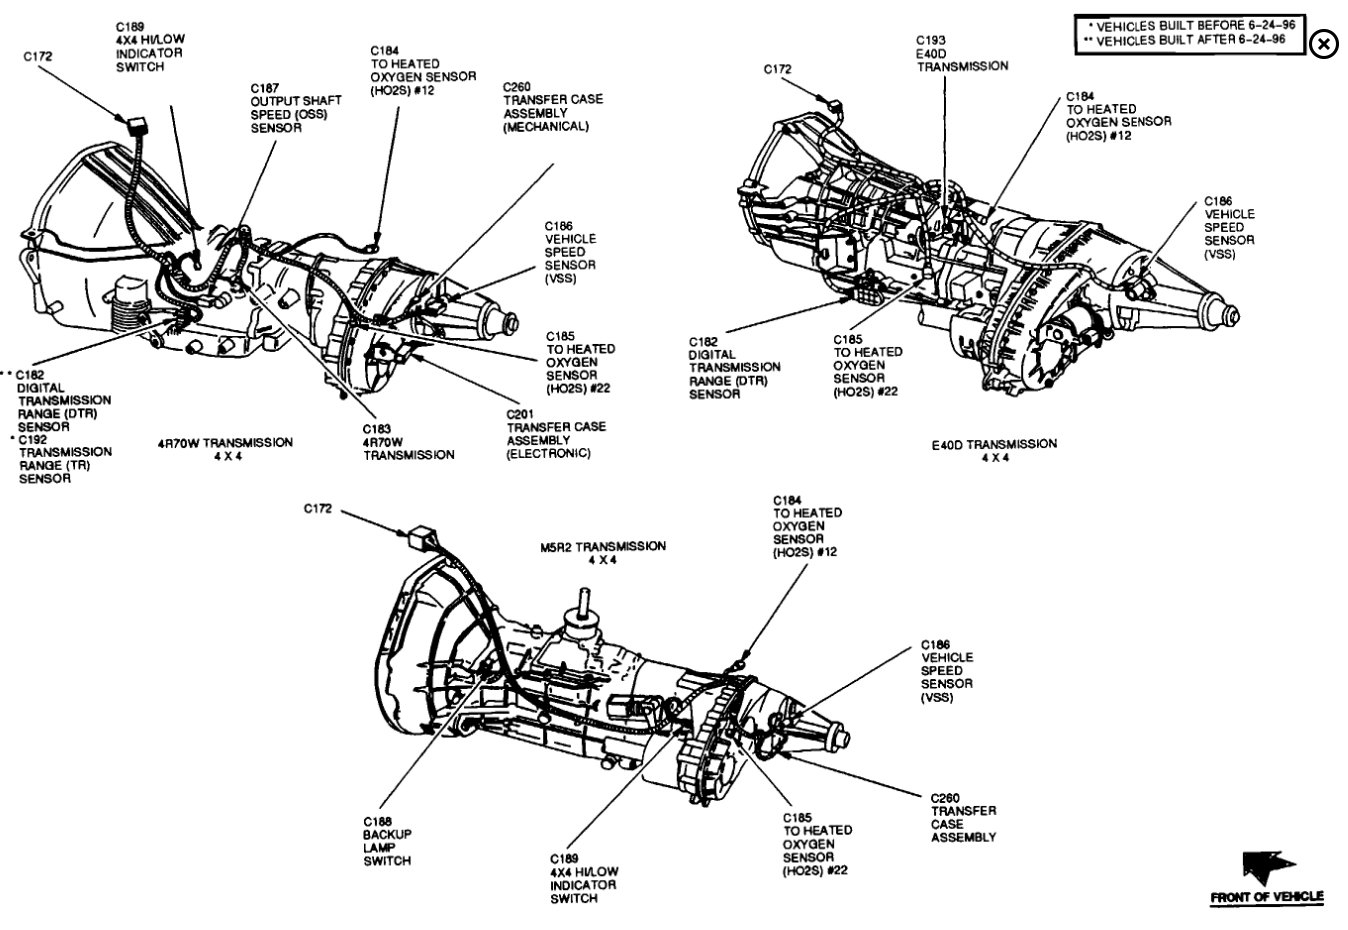 hight resolution of 1992 ford f150 manual transmission diagram wiring diagram load 1992 ford manual transmission diagram wiring diagram